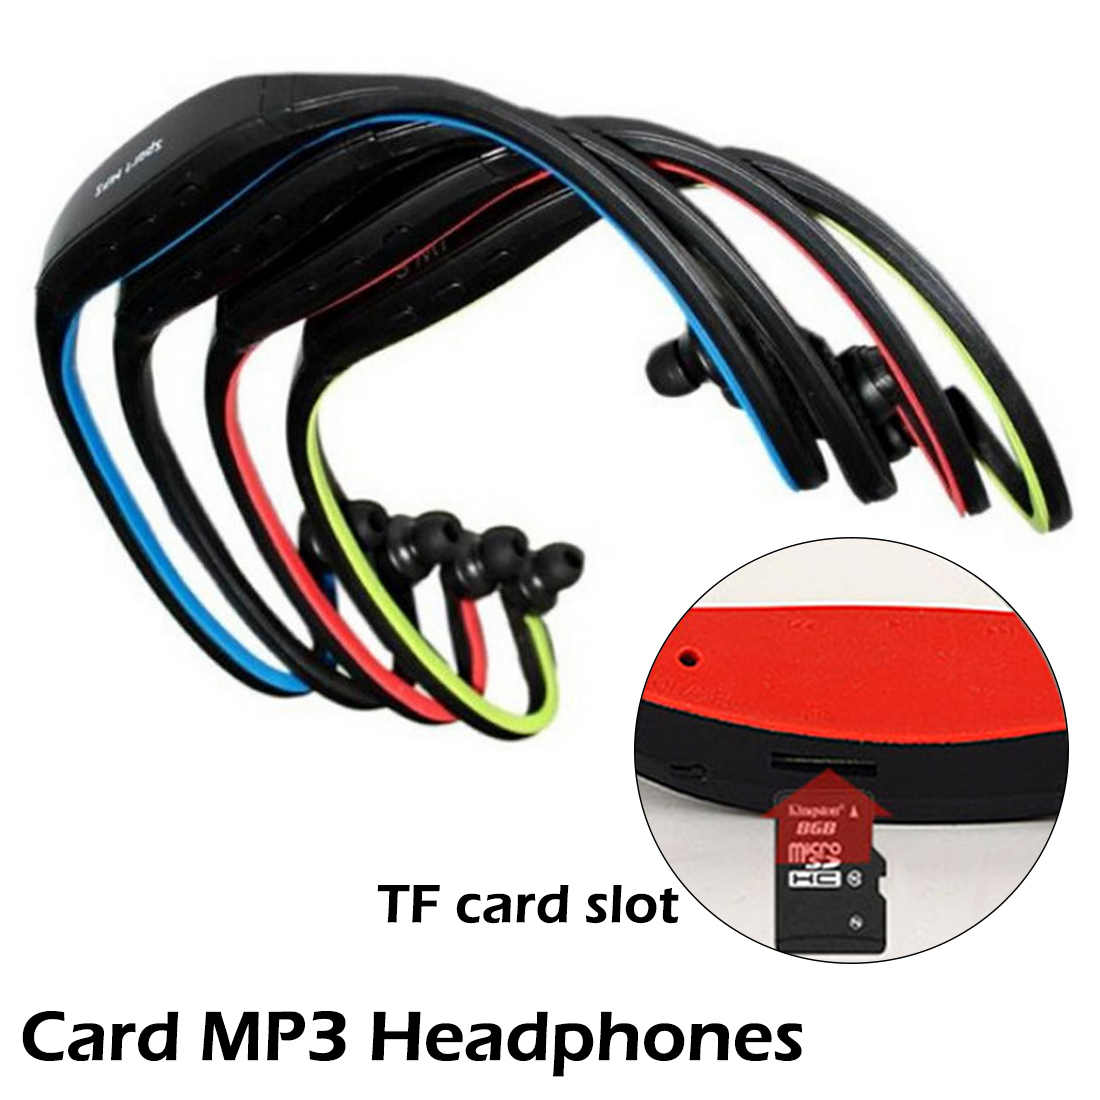 Universal Sport MP3 Player Portable Music Running Headphone Earphone Headset with TF Card Slot MP3 Music Player image